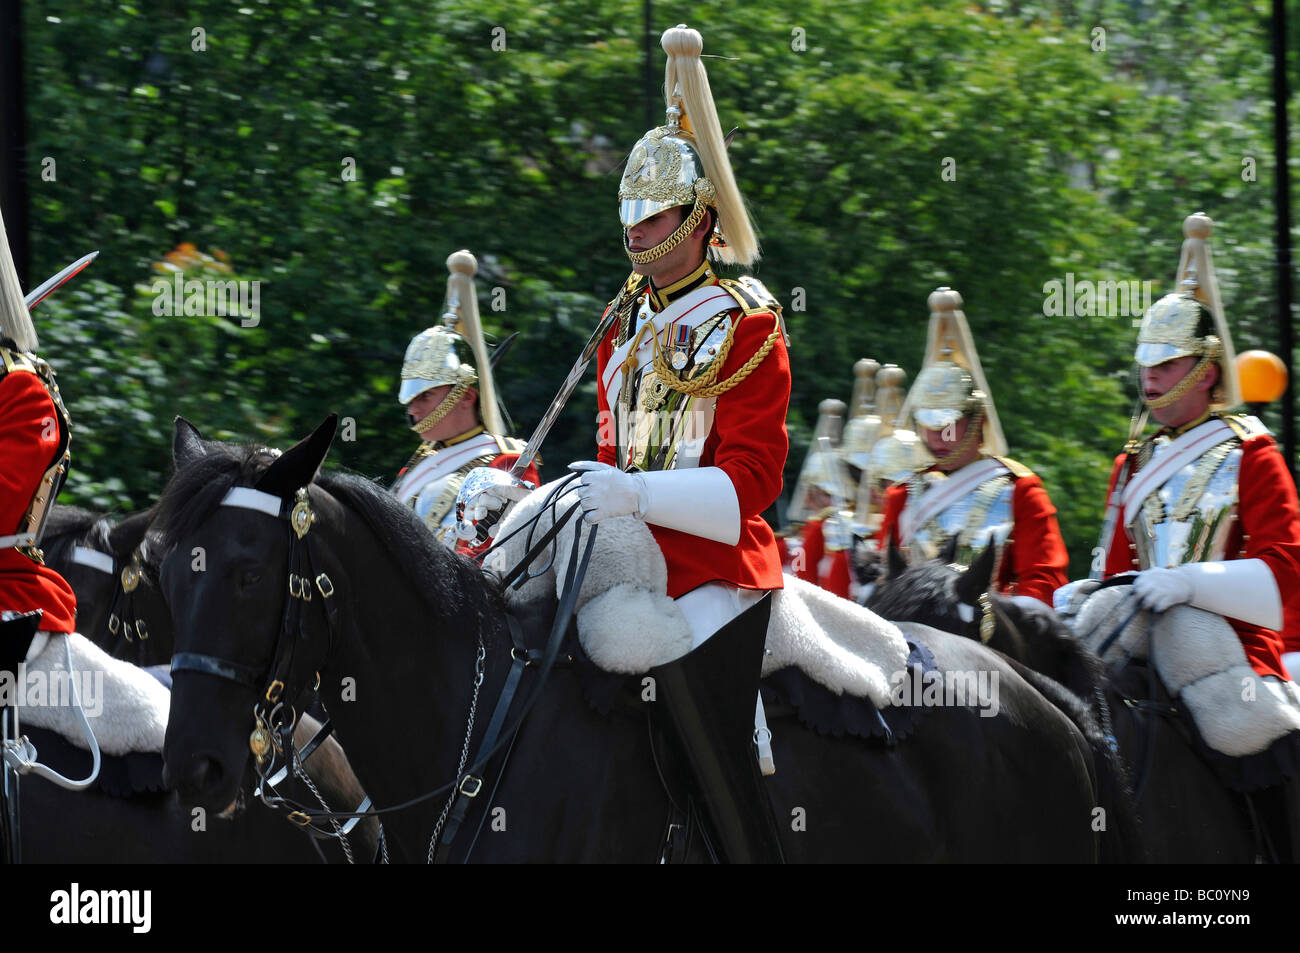 Horse Guards exiting Hyde Park in London - Stock Image